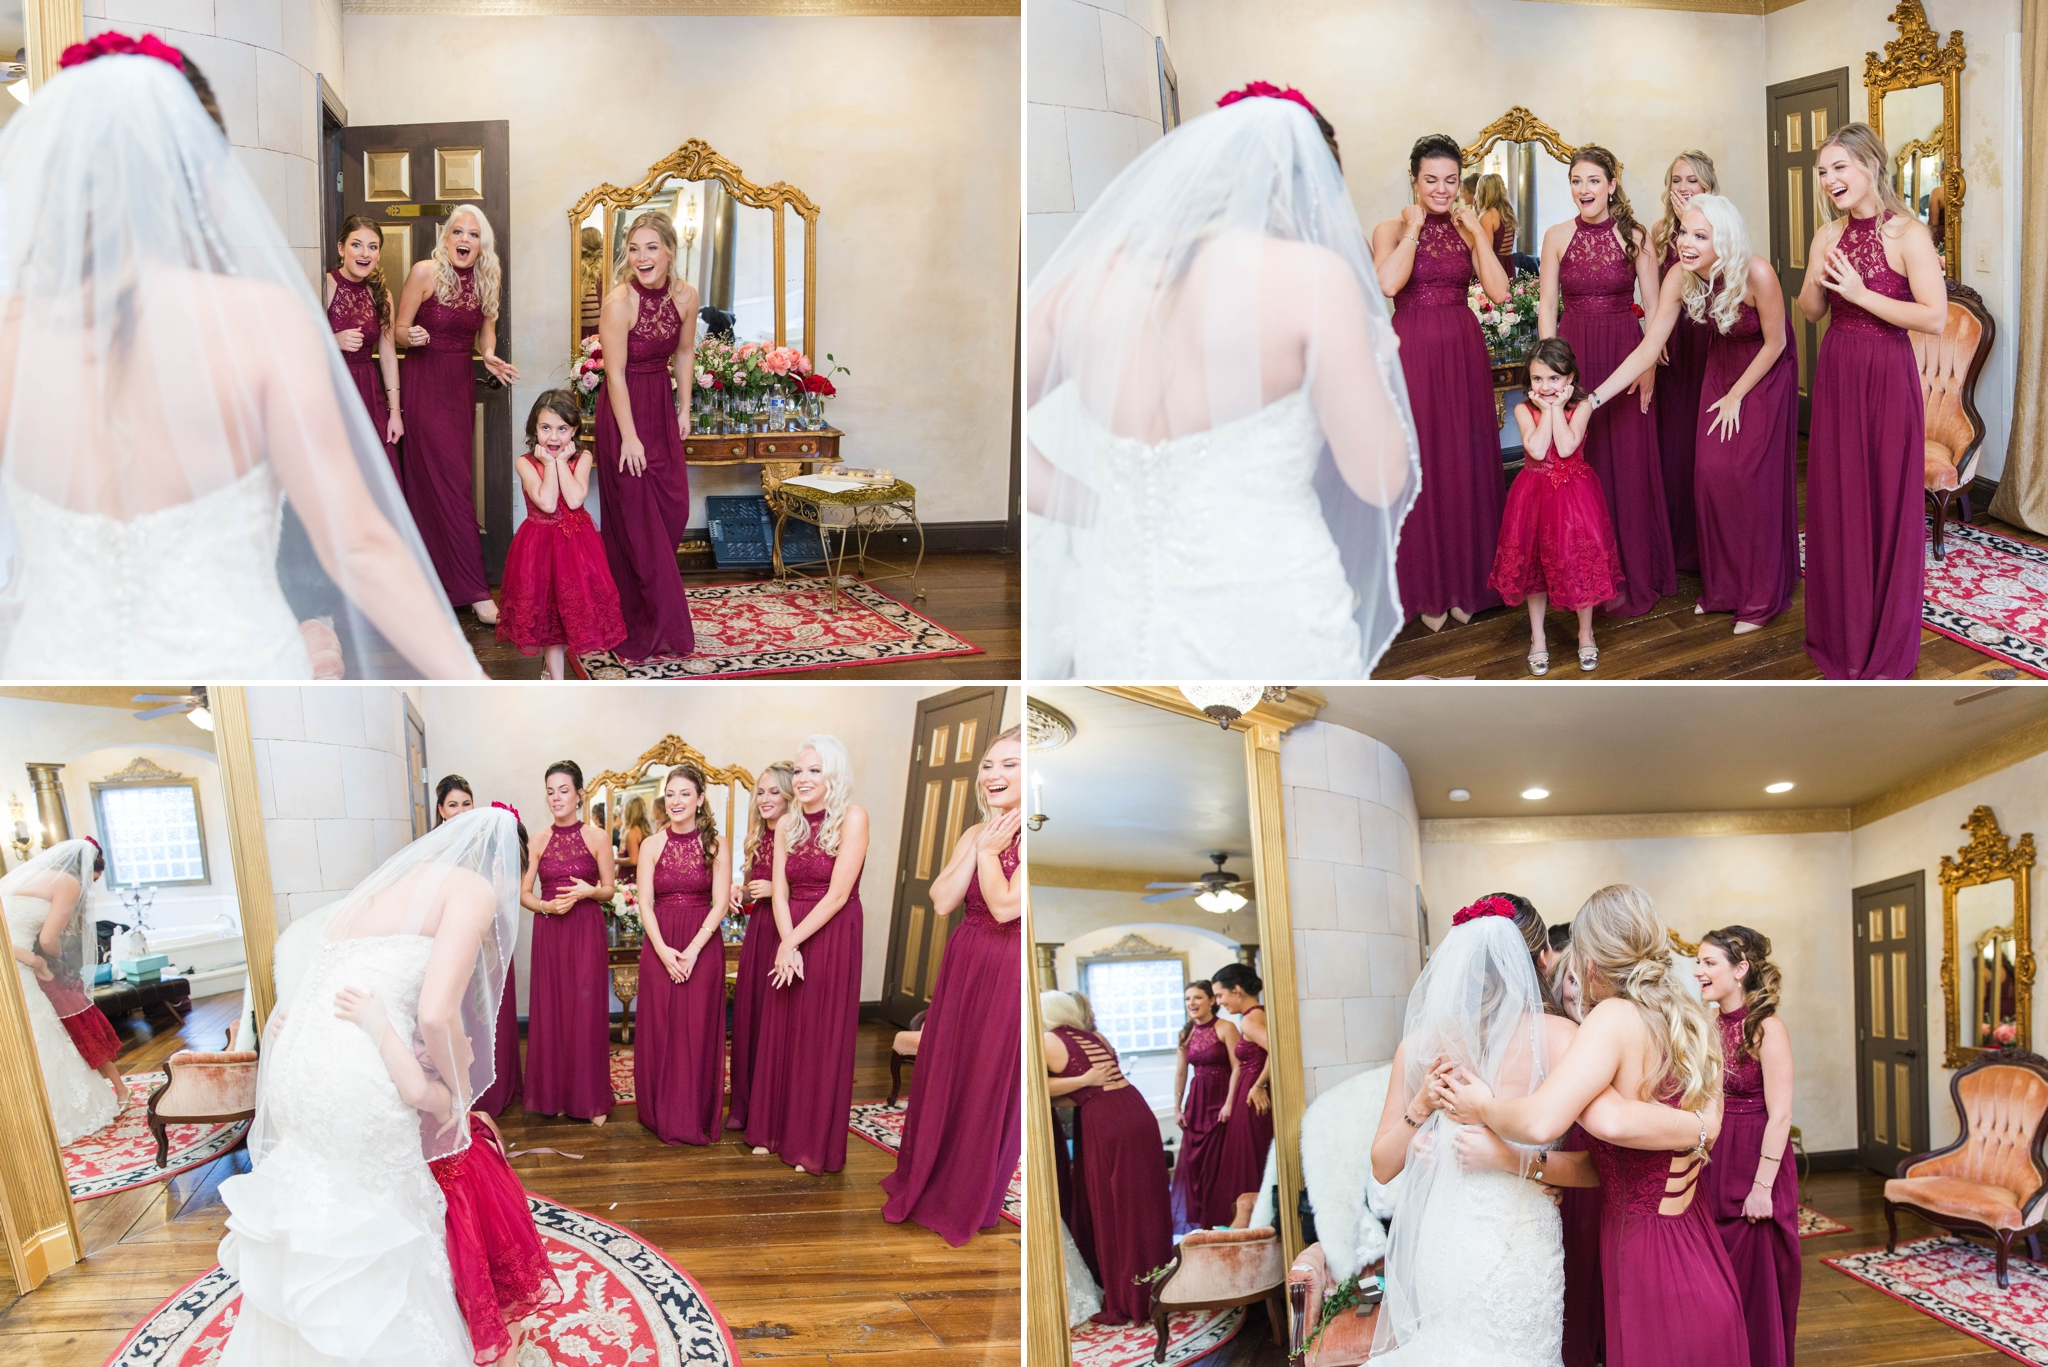 First look of Bride and Bridesmaids - Honolulu Oahu Hawaii Wedding Photographer